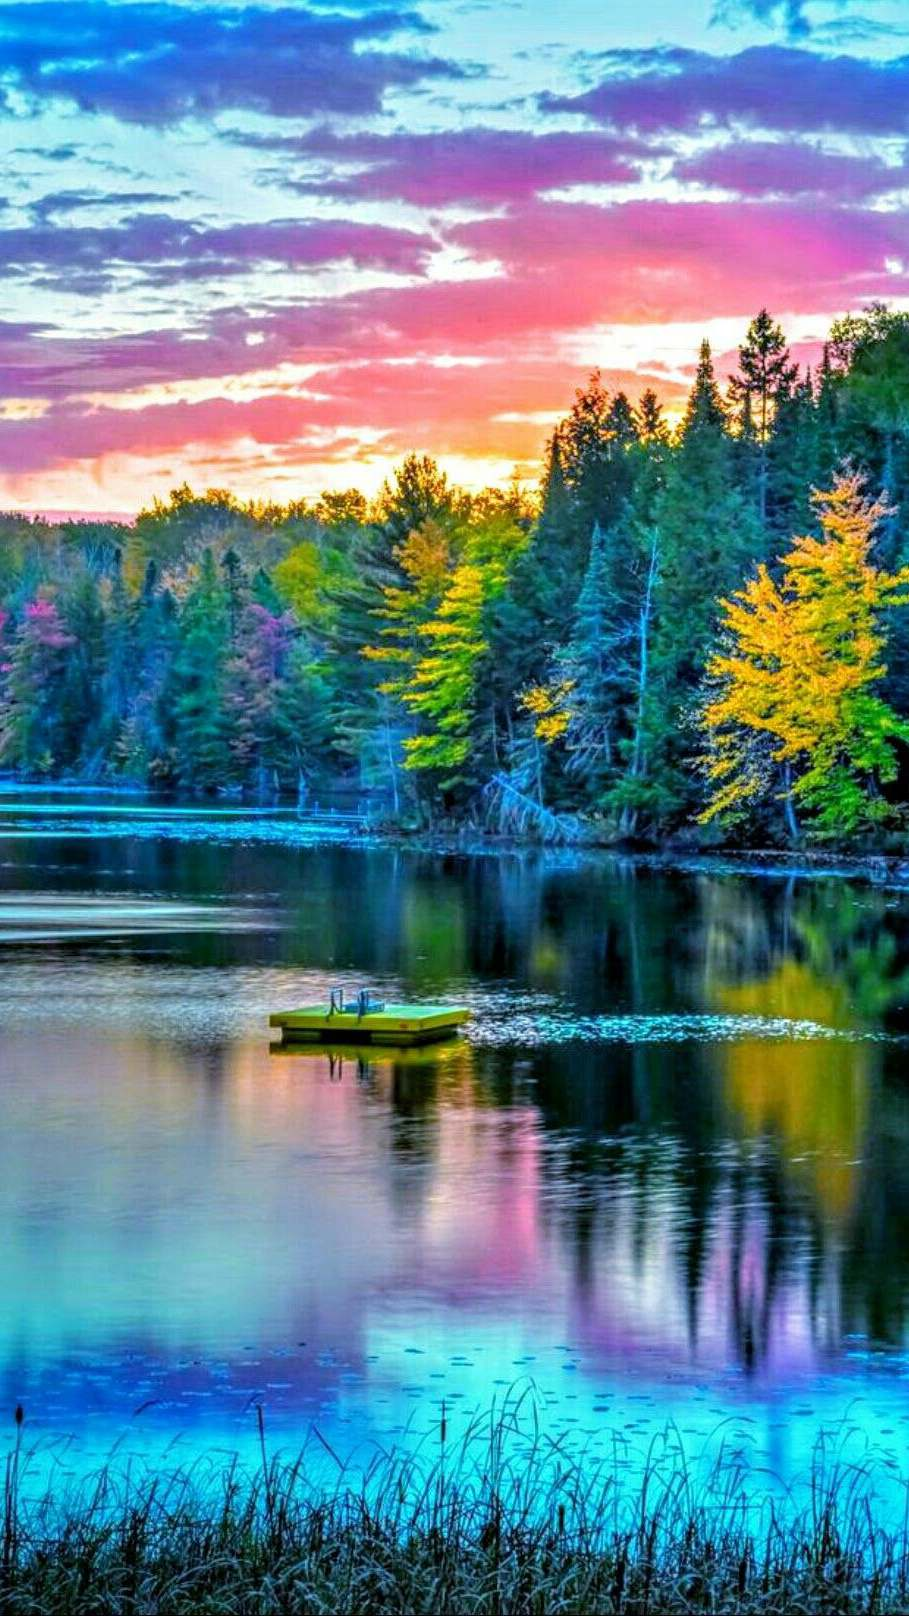 Nature Scenery Lake Colourful iPhone Wallpaper